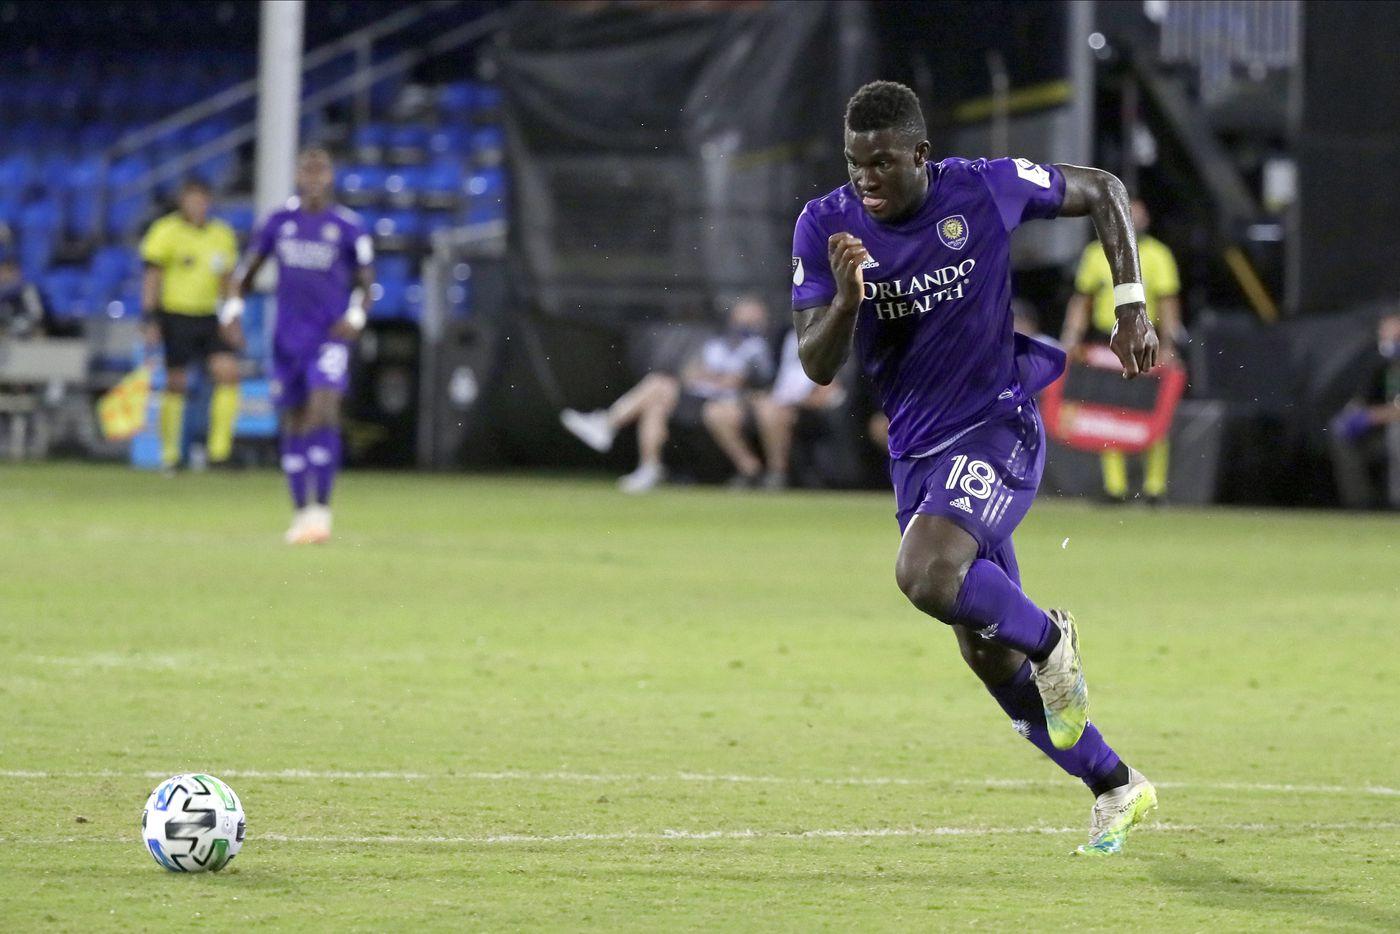 Orlando City SC forward Daryl Dike. Photo: Orlando Sentinel.